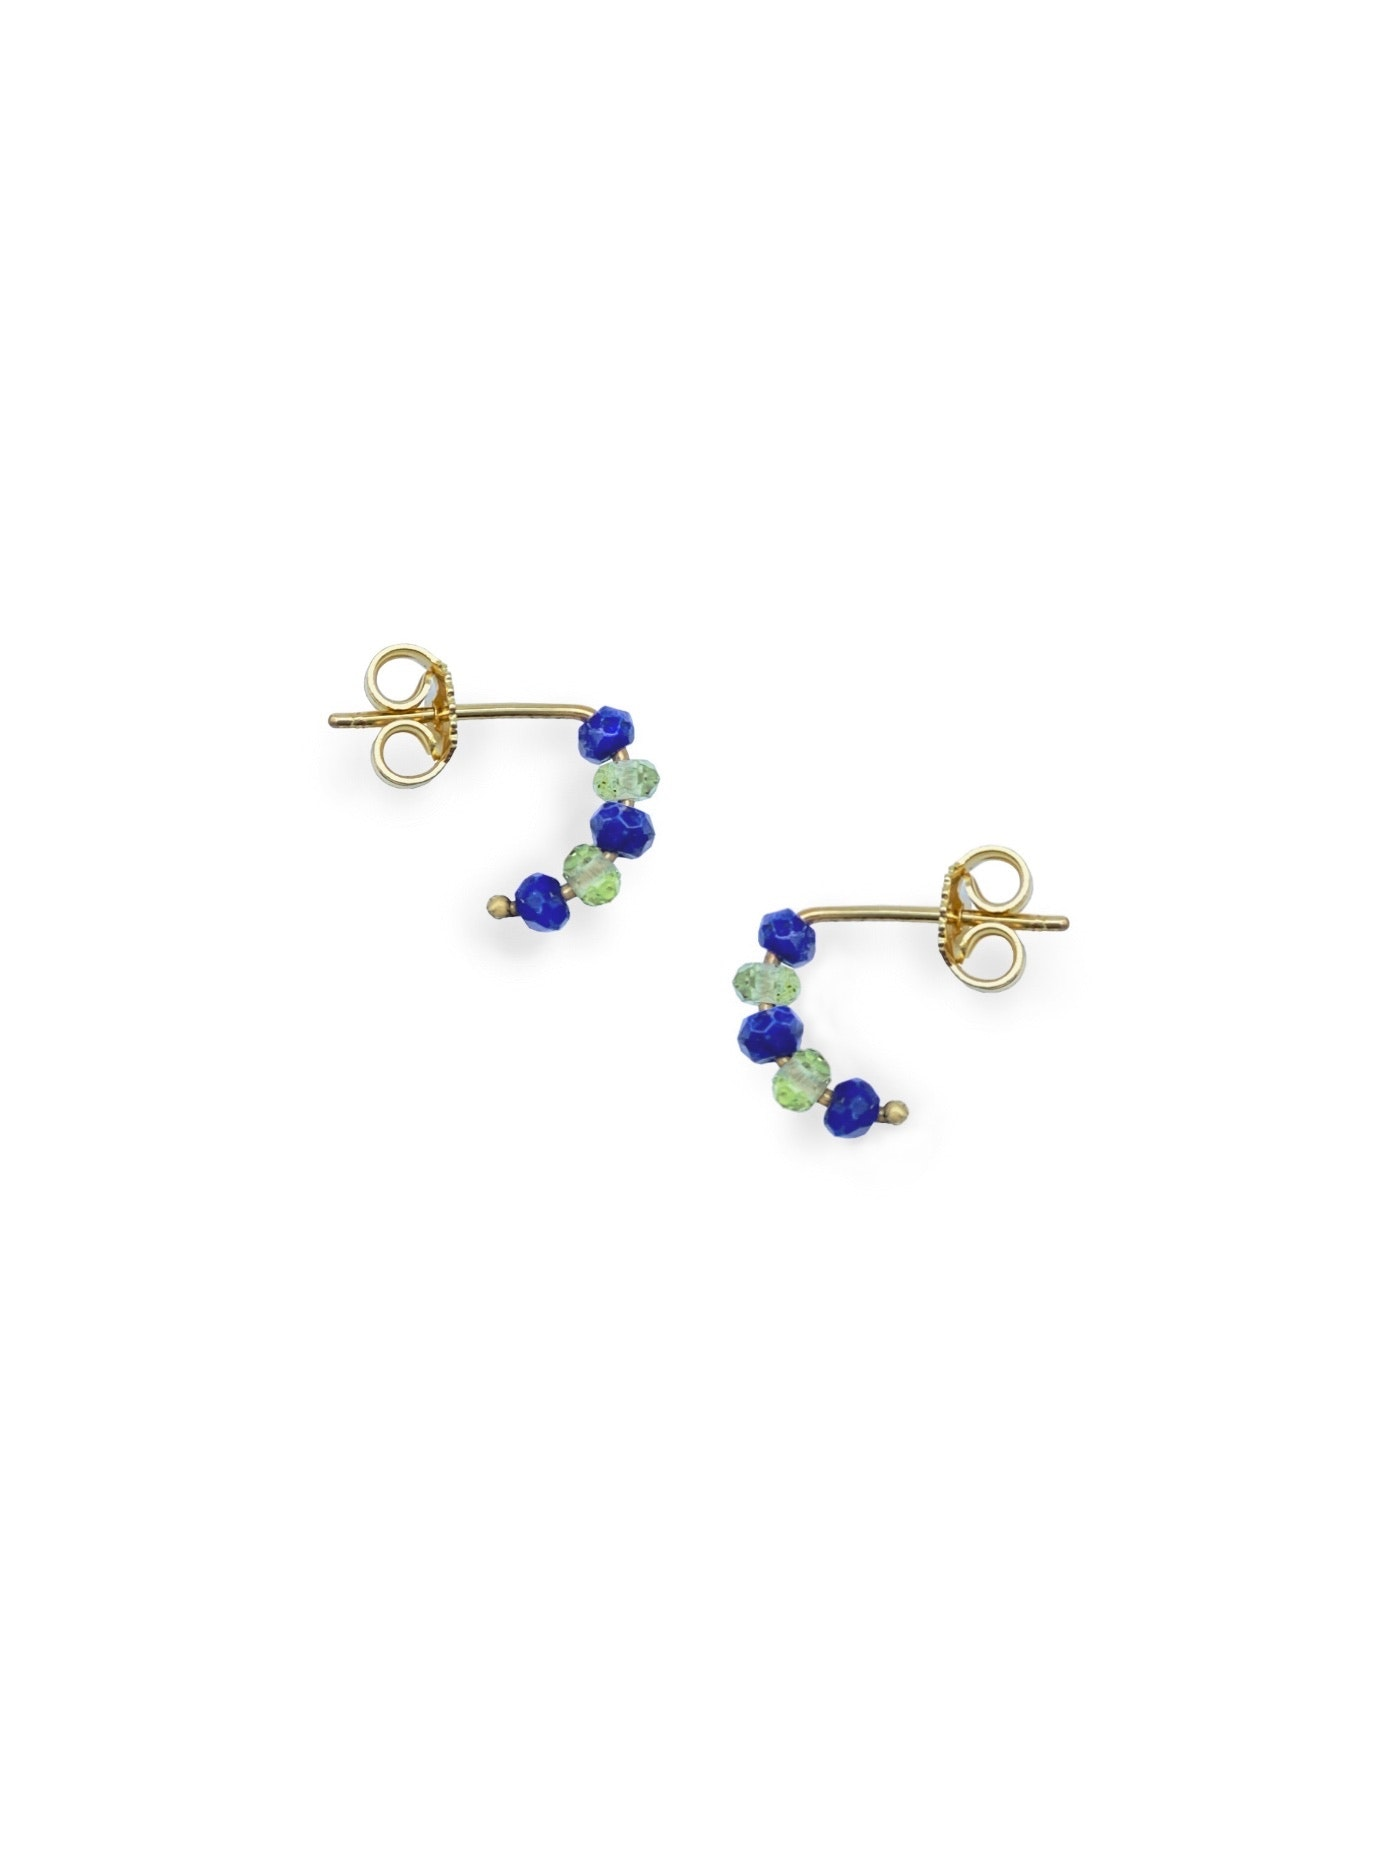 Tuttifrutti mini earrings 18kt gold and semiprecious stones- light green and blue- made in Florence by Margherita de Martino Norante